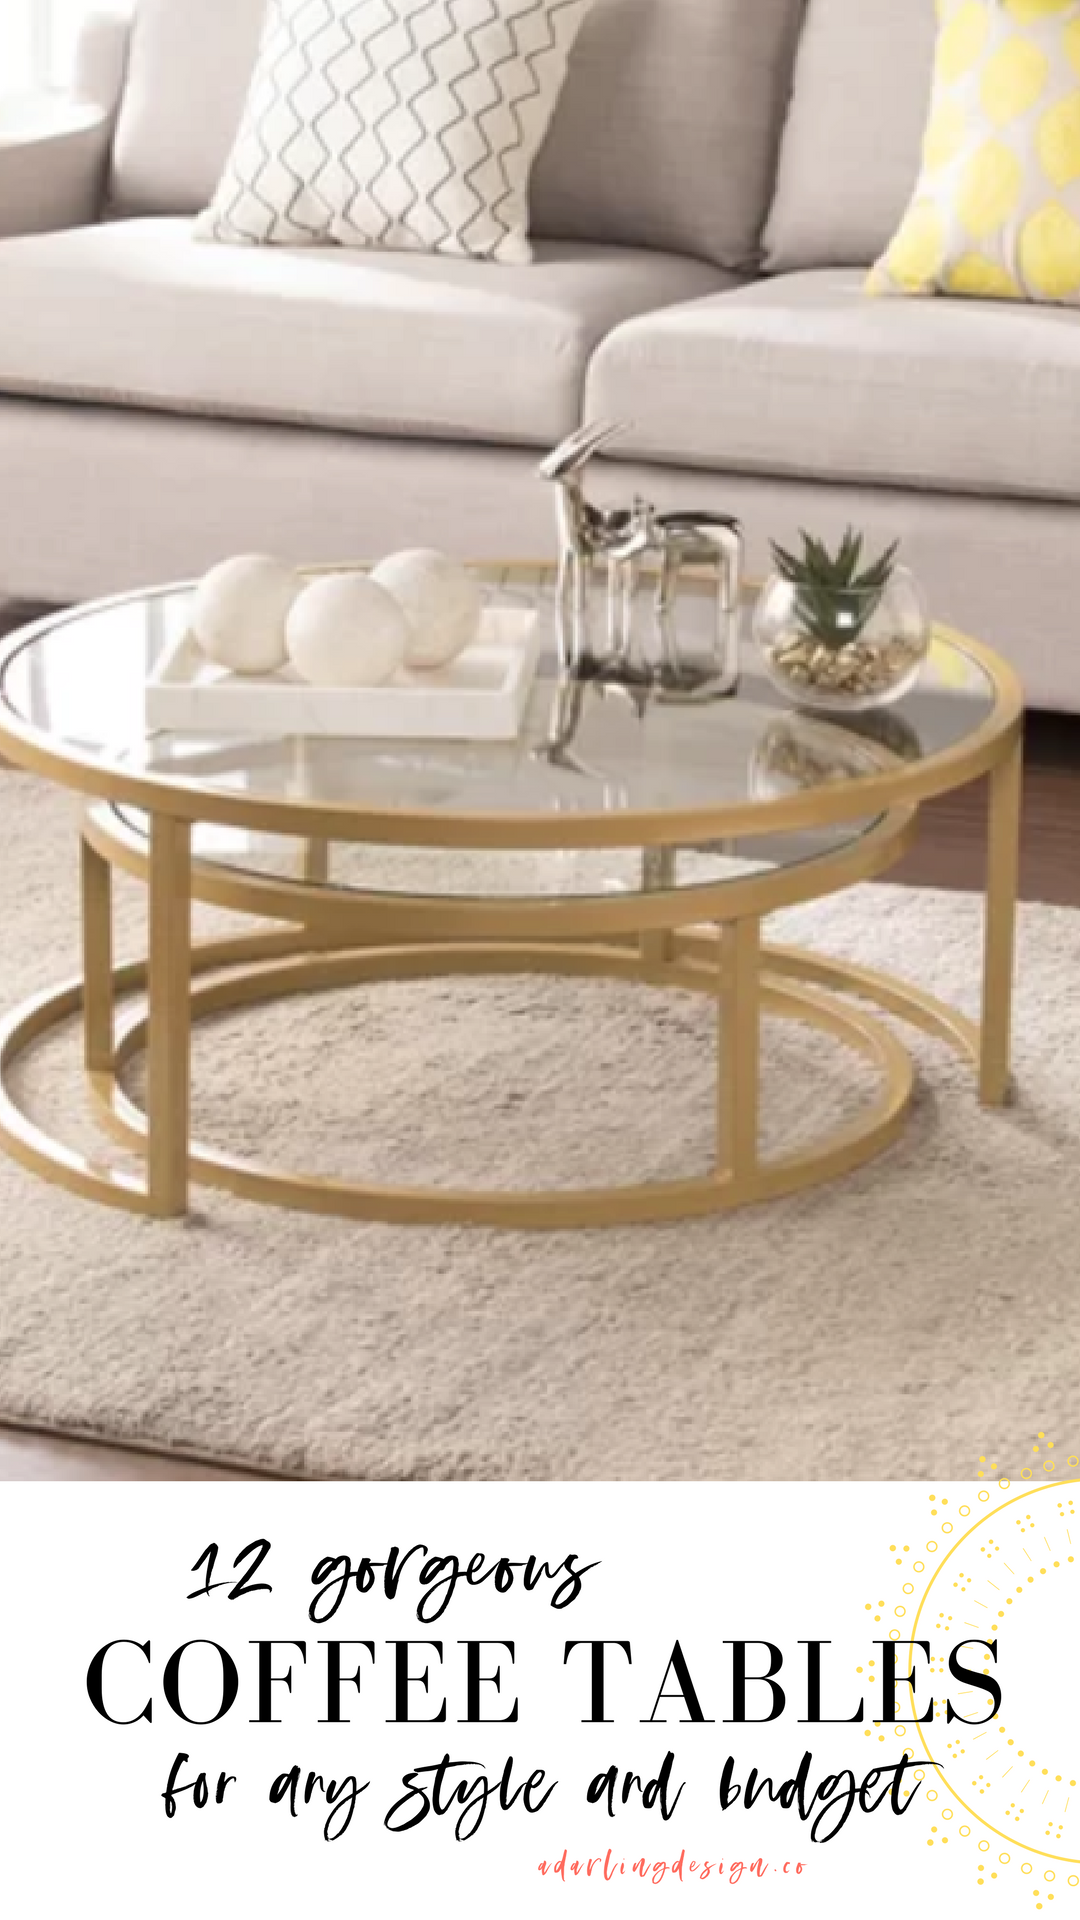 Gorgeous Living Room Coffee Tables Ideas For Small Spaces On A Budget Living Room Coffee Table Coffee Table Coffee Table Small Space